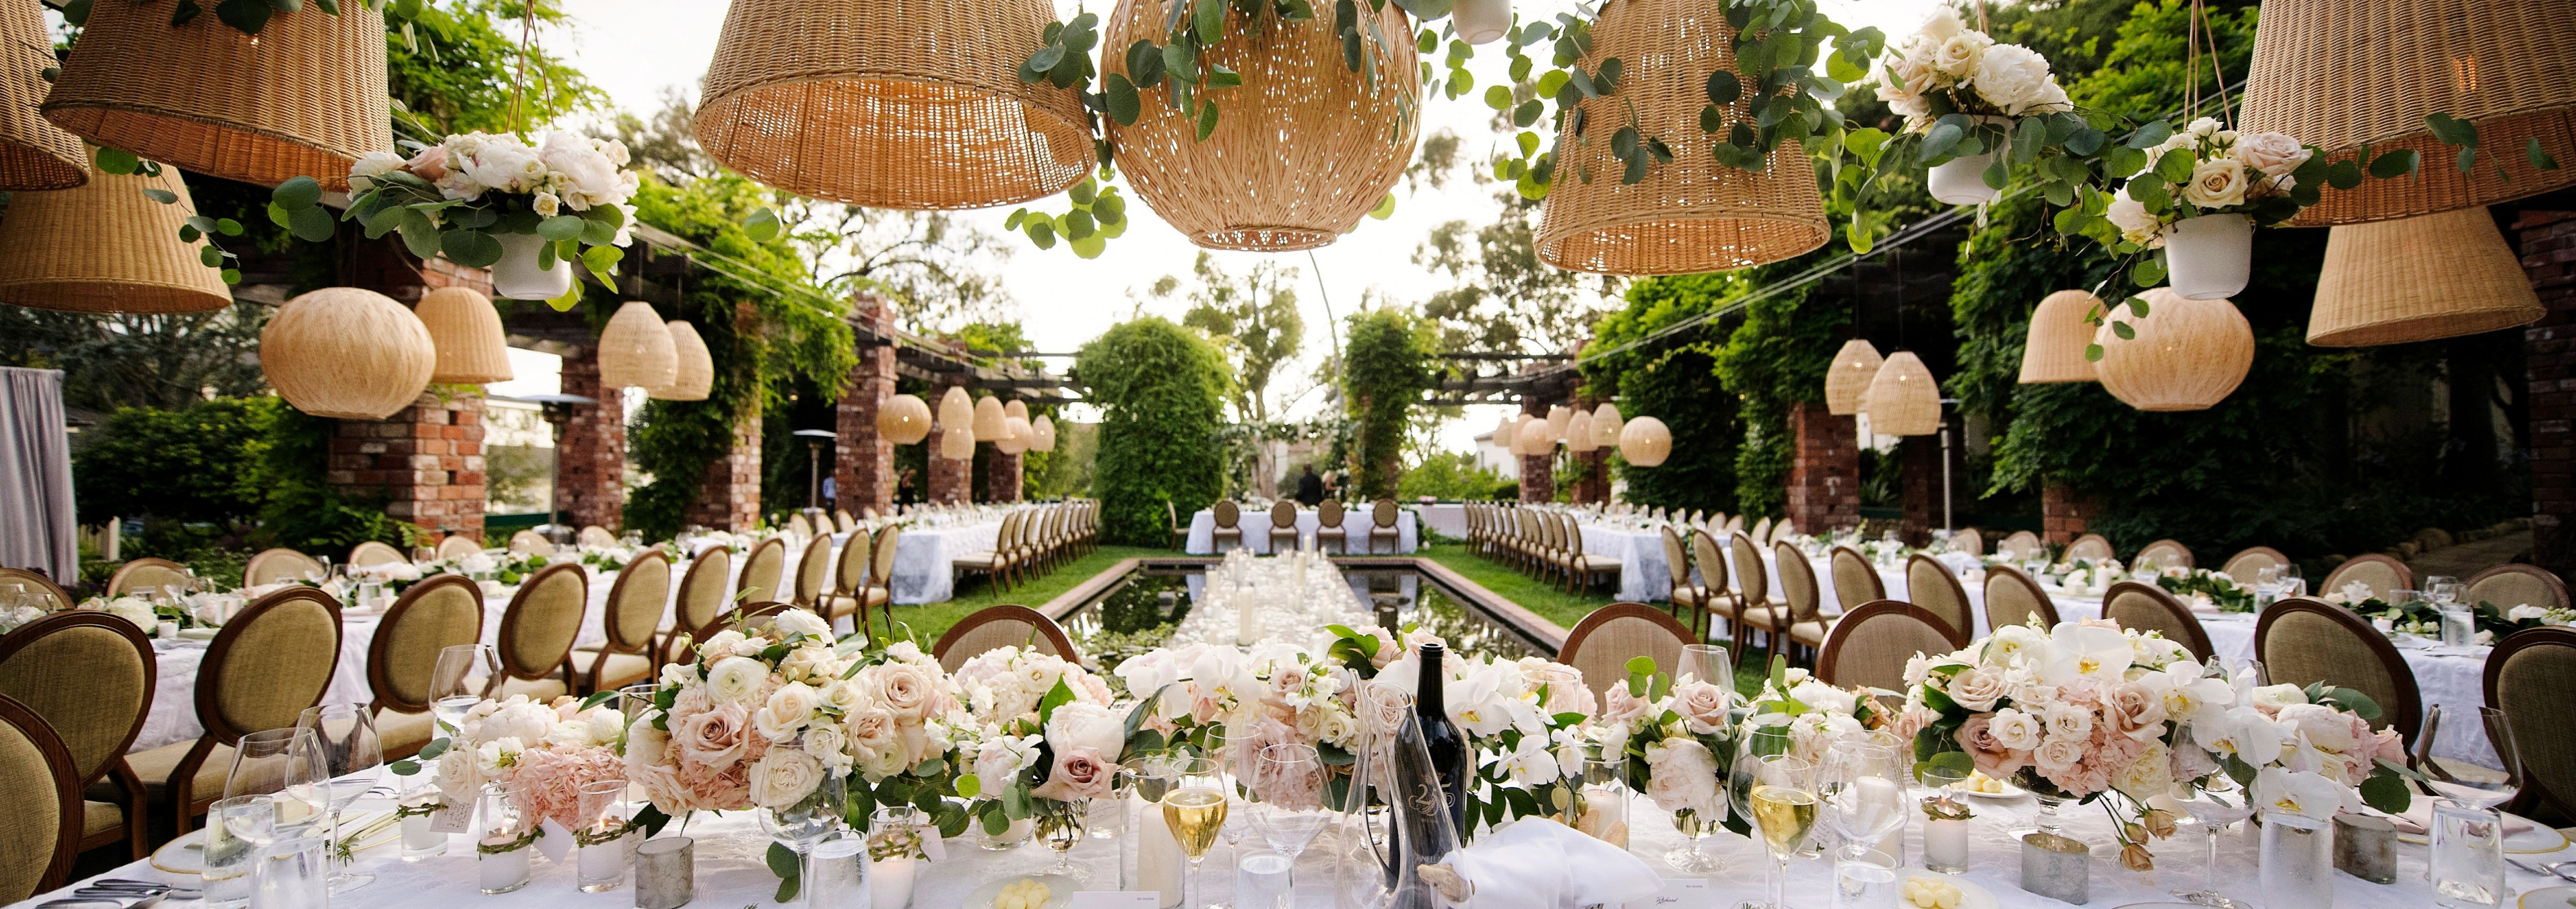 belmond el encanto outdoor wedding reception